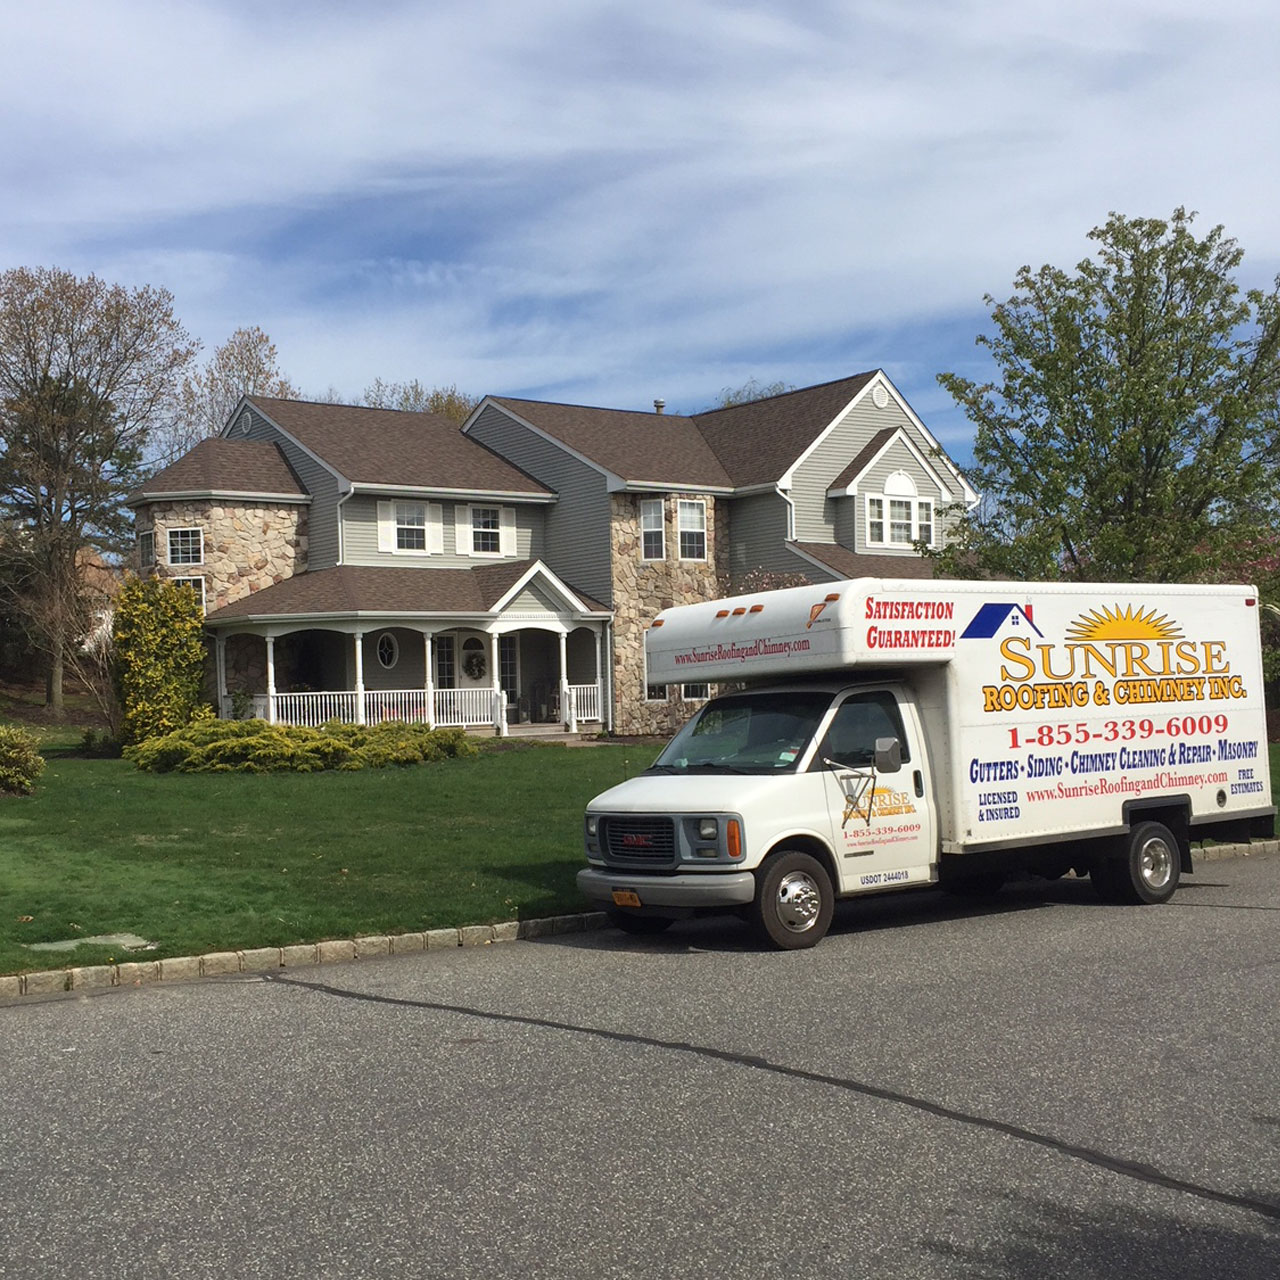 Sunrise Roofing Chimney Inc Best Long Island Roofing Contractors